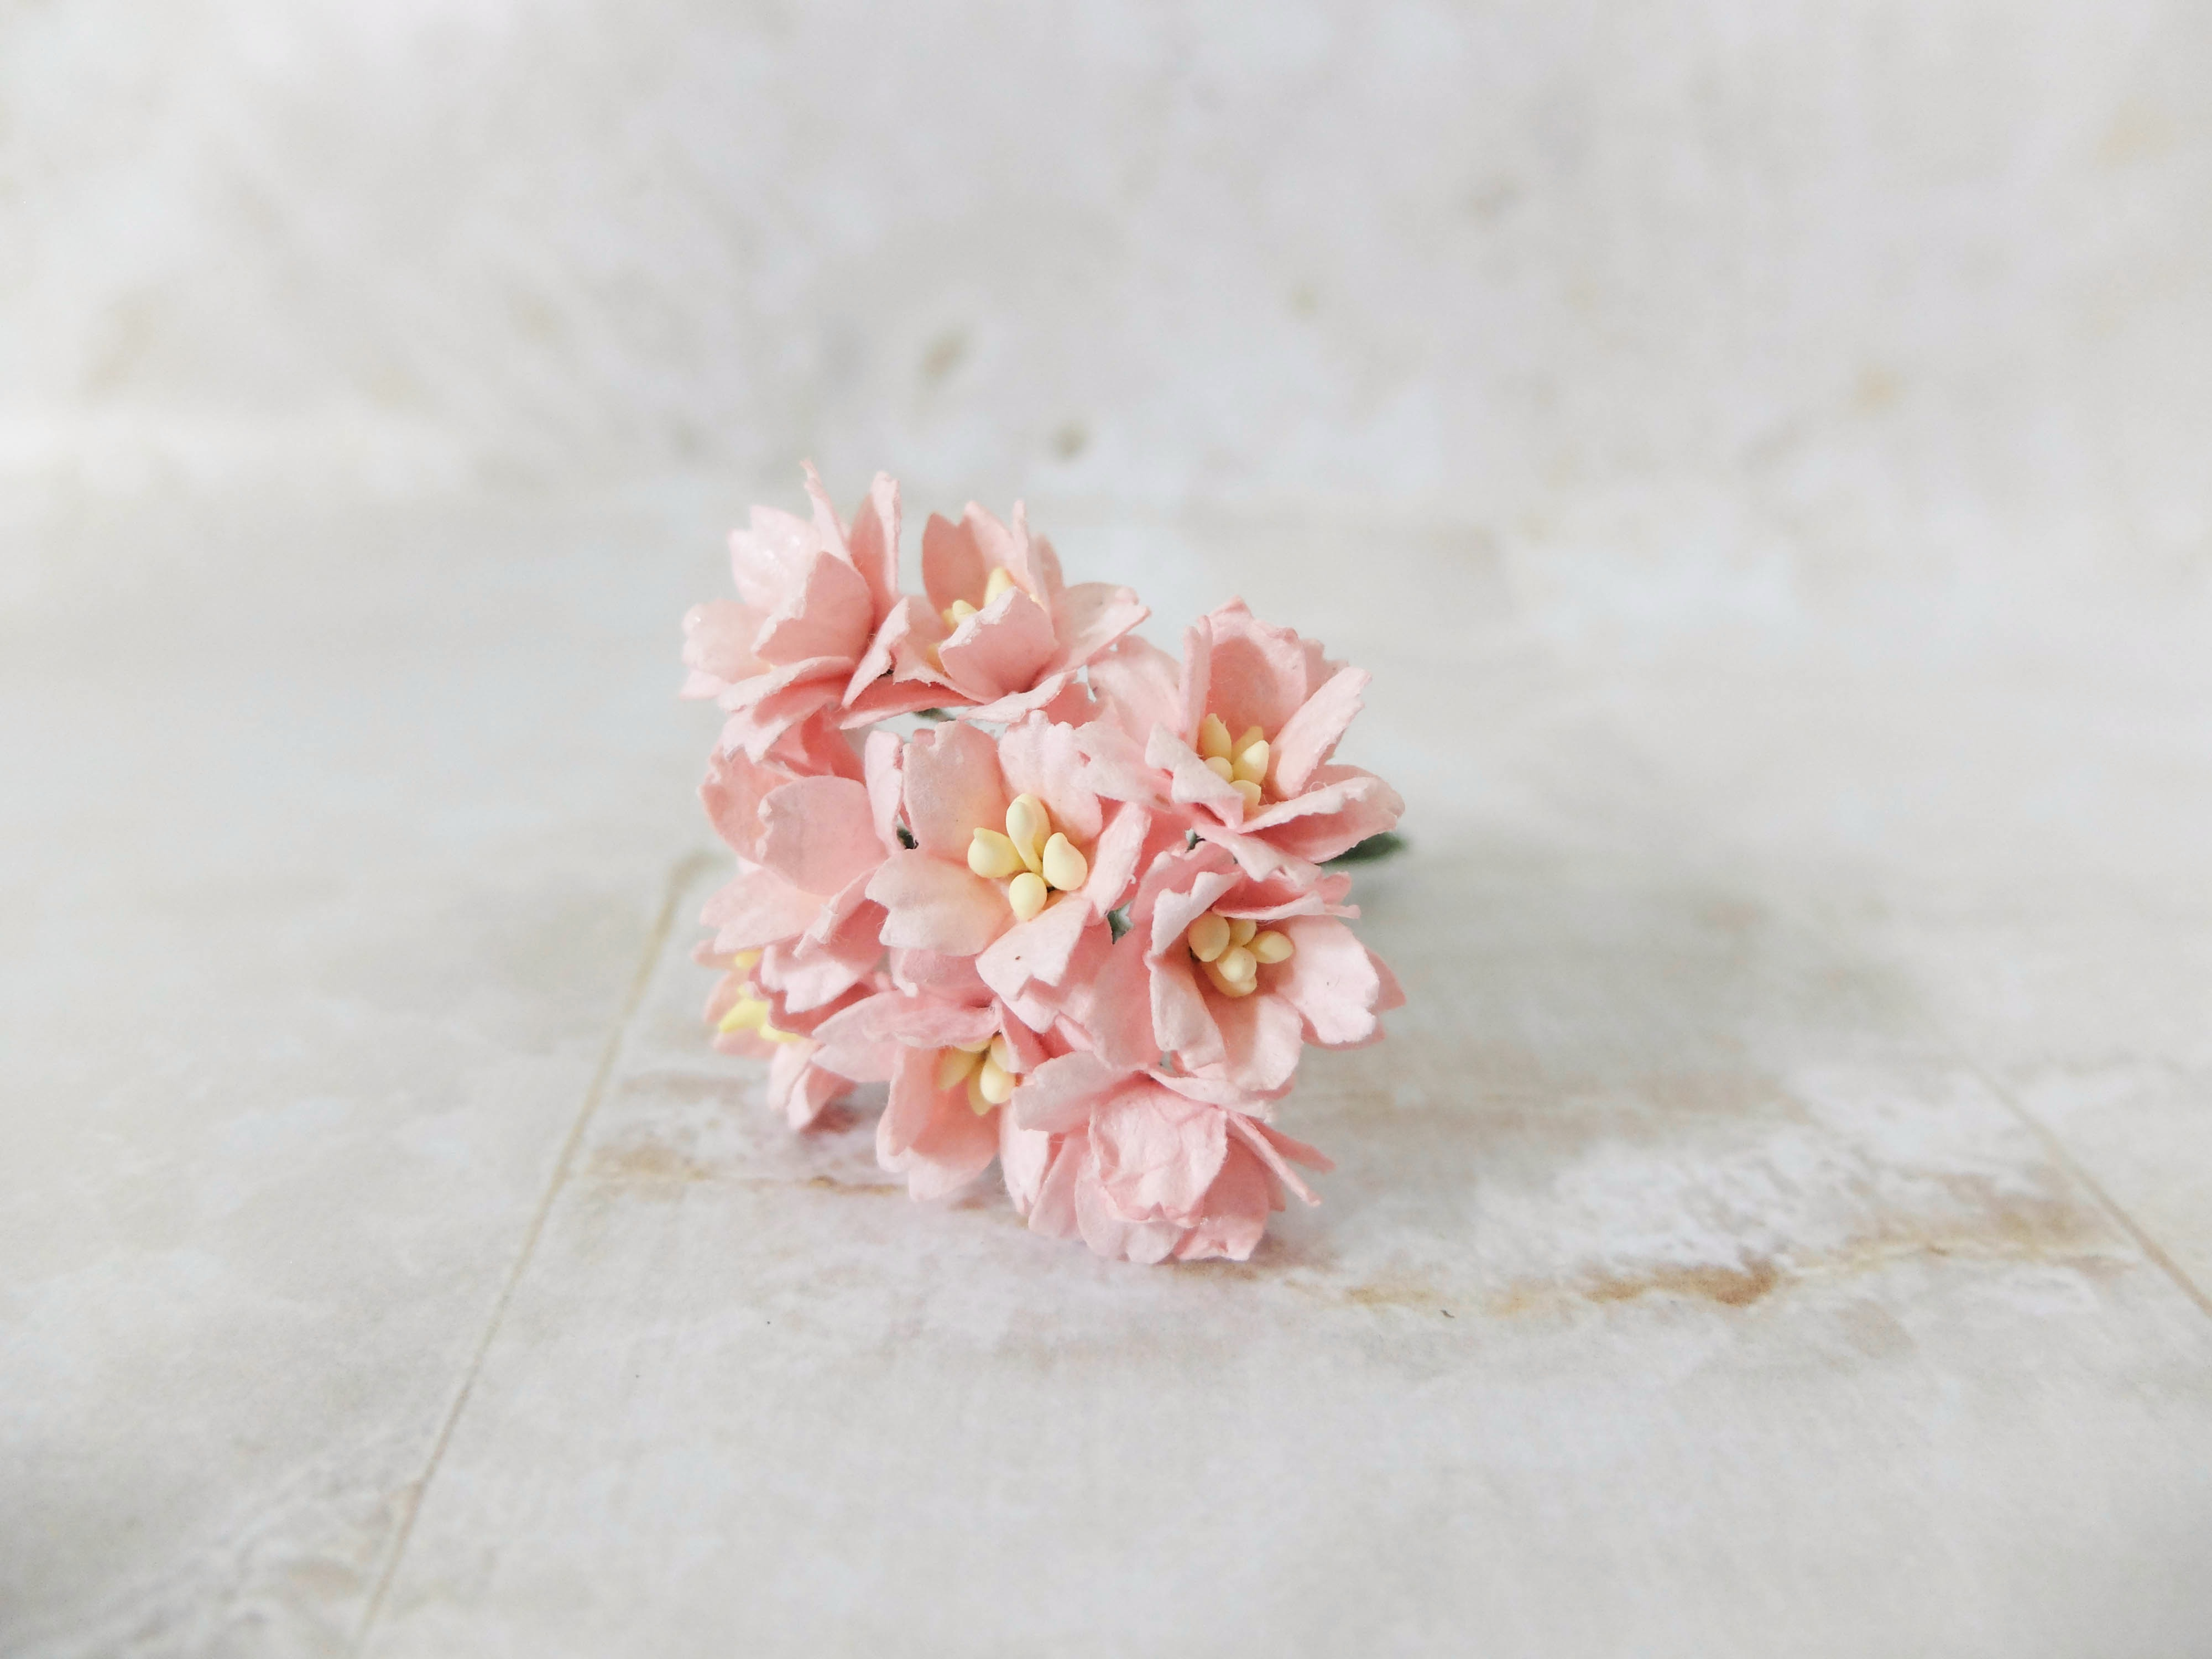 2 Cm Paper Cherry Blossom Mulberry Flowers With Wire Stems